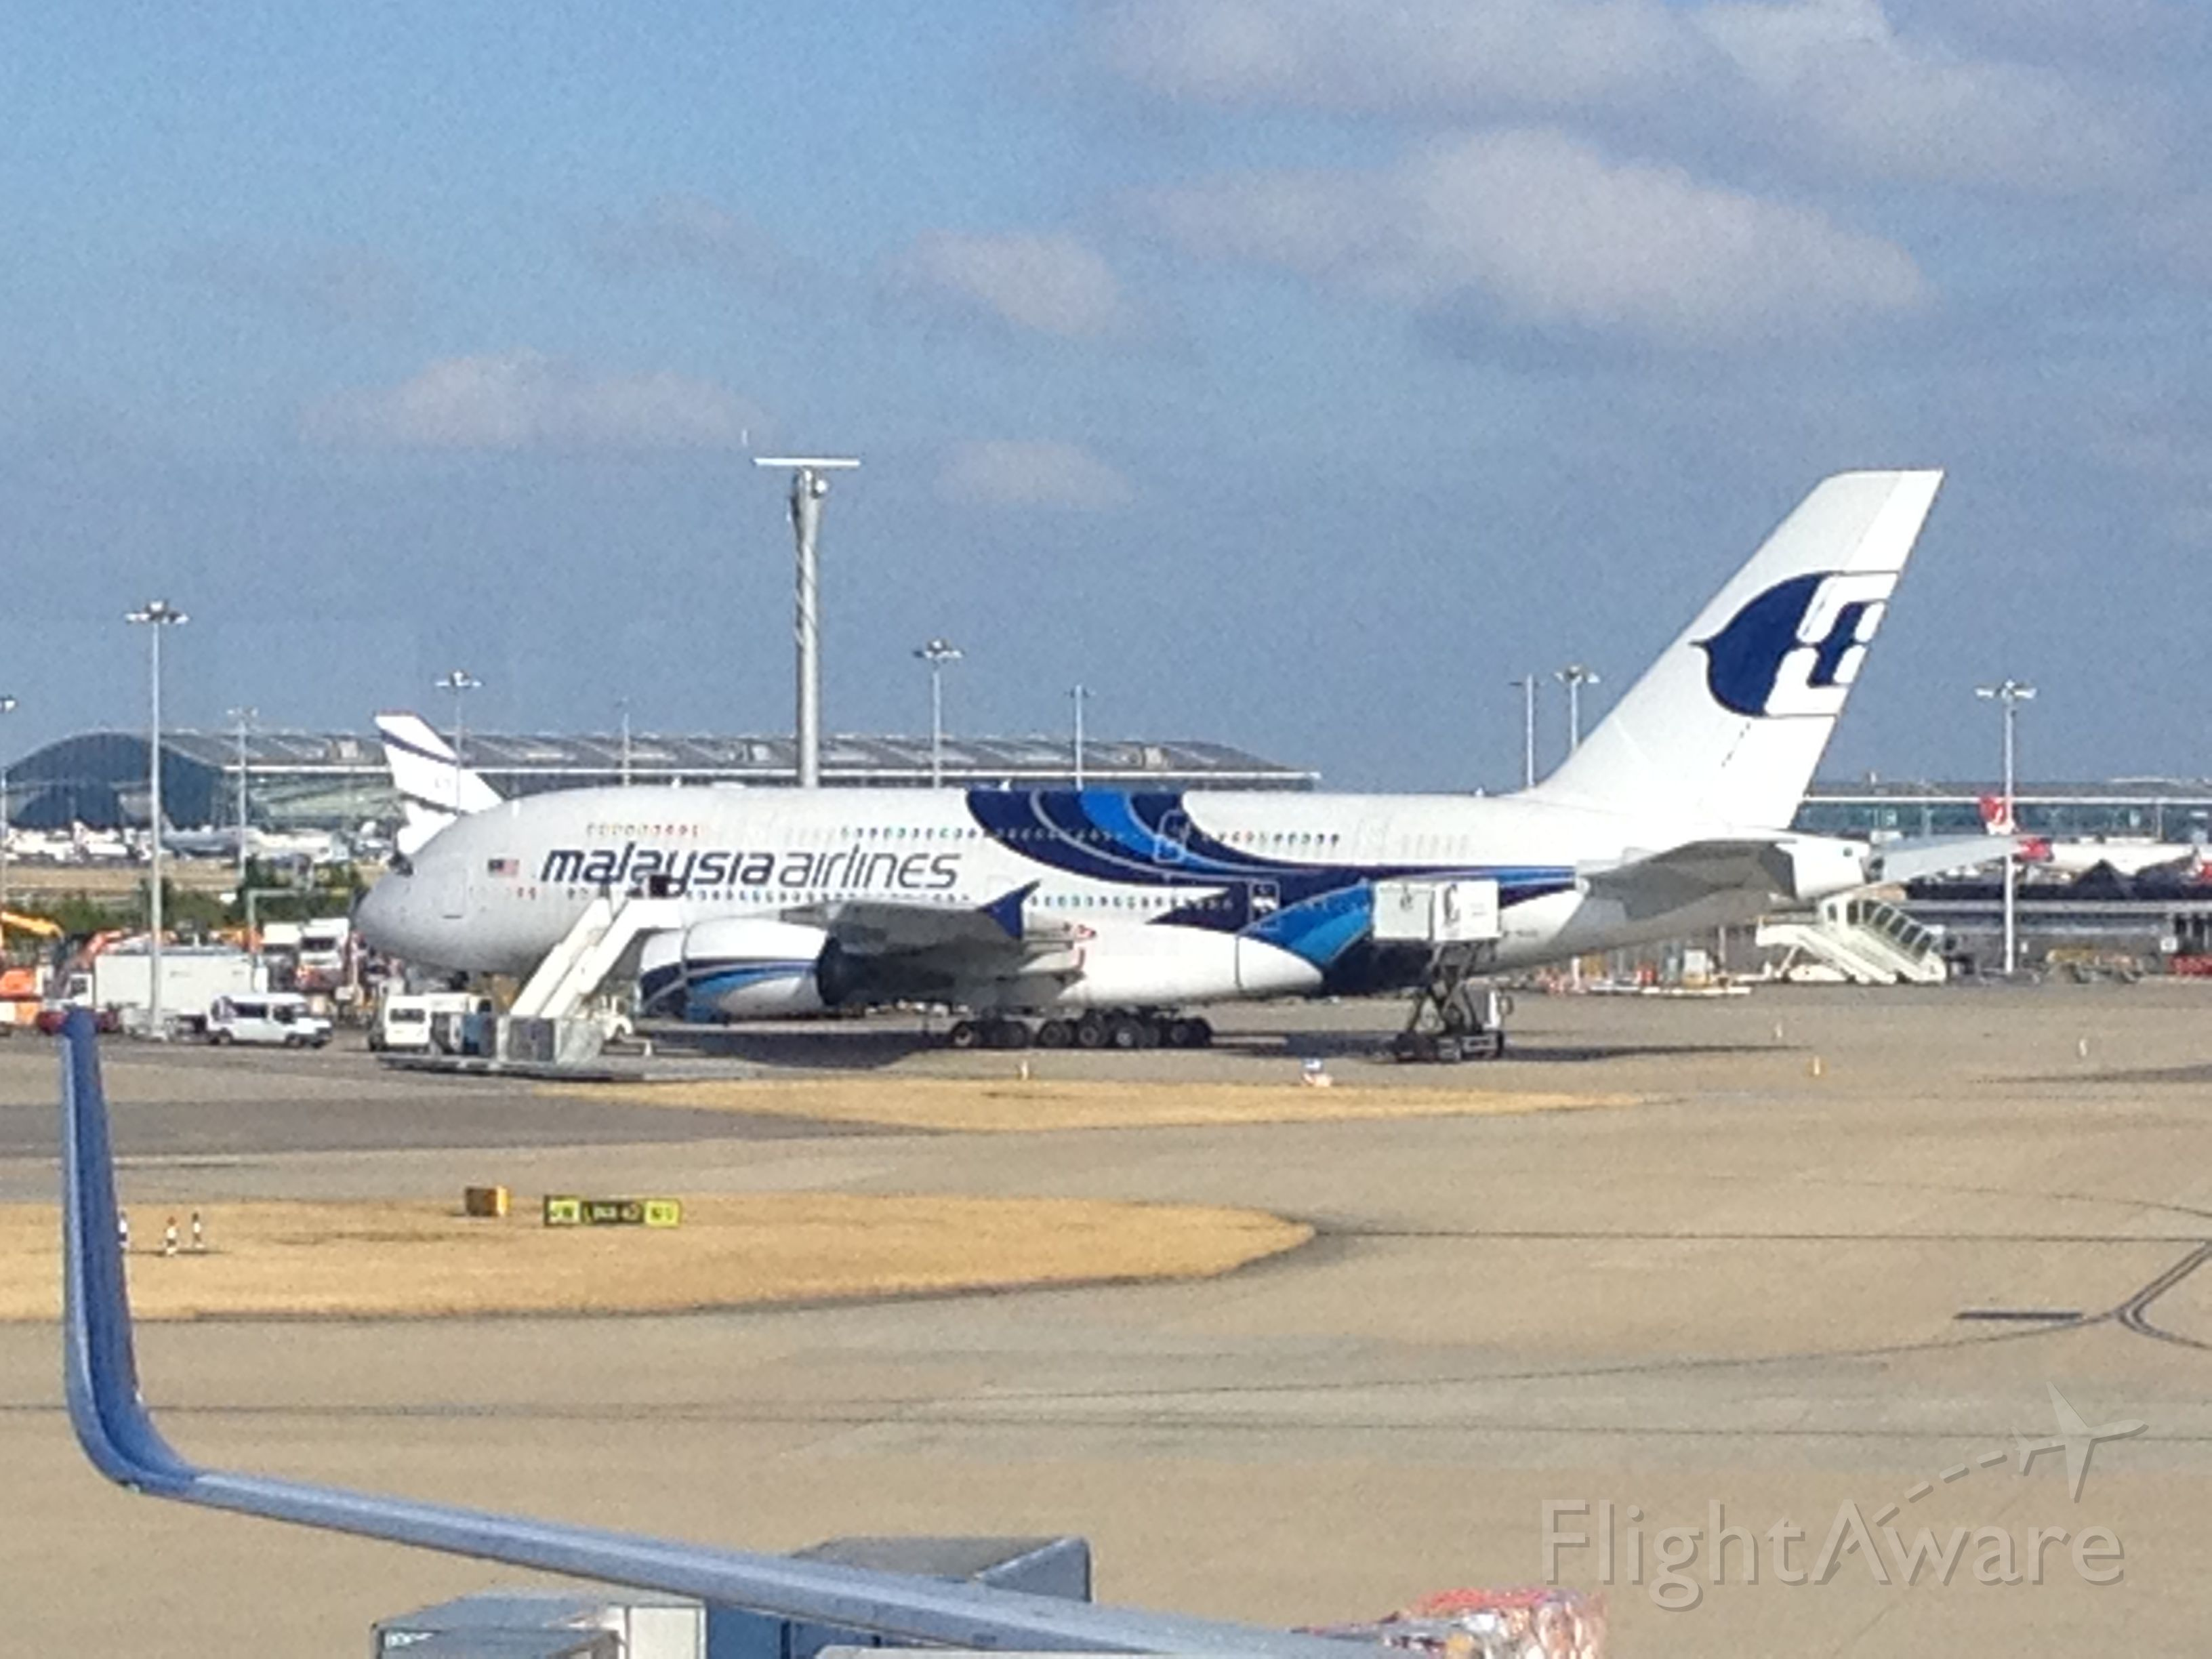 Airbus A380-800 — - Taken from Terminal 4 at Heathrow.  Sorry for not being able to get the registration number